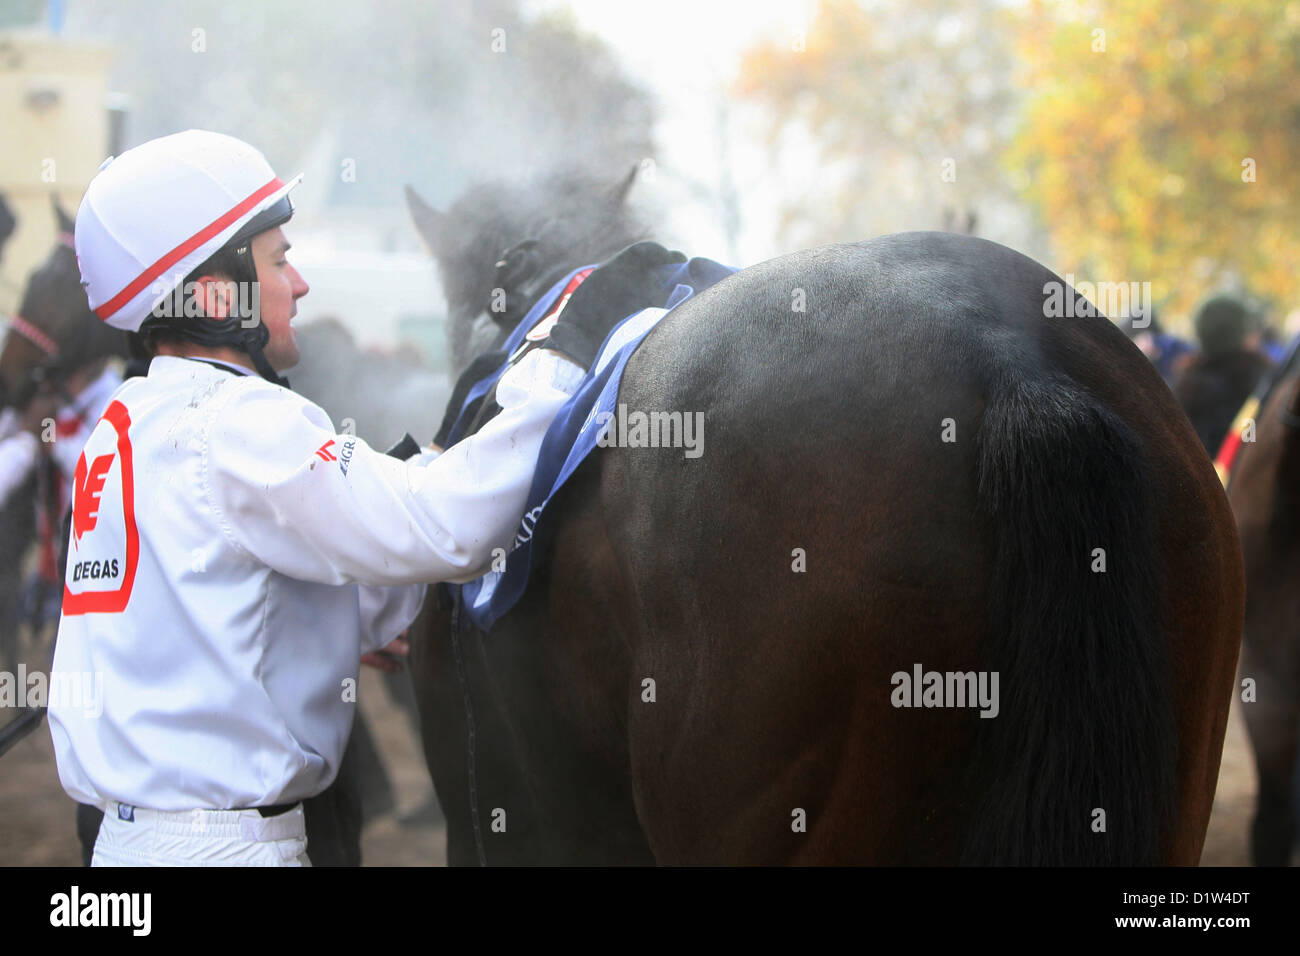 Halle, Germany, jockey saddle from his horse after the race - Stock Image